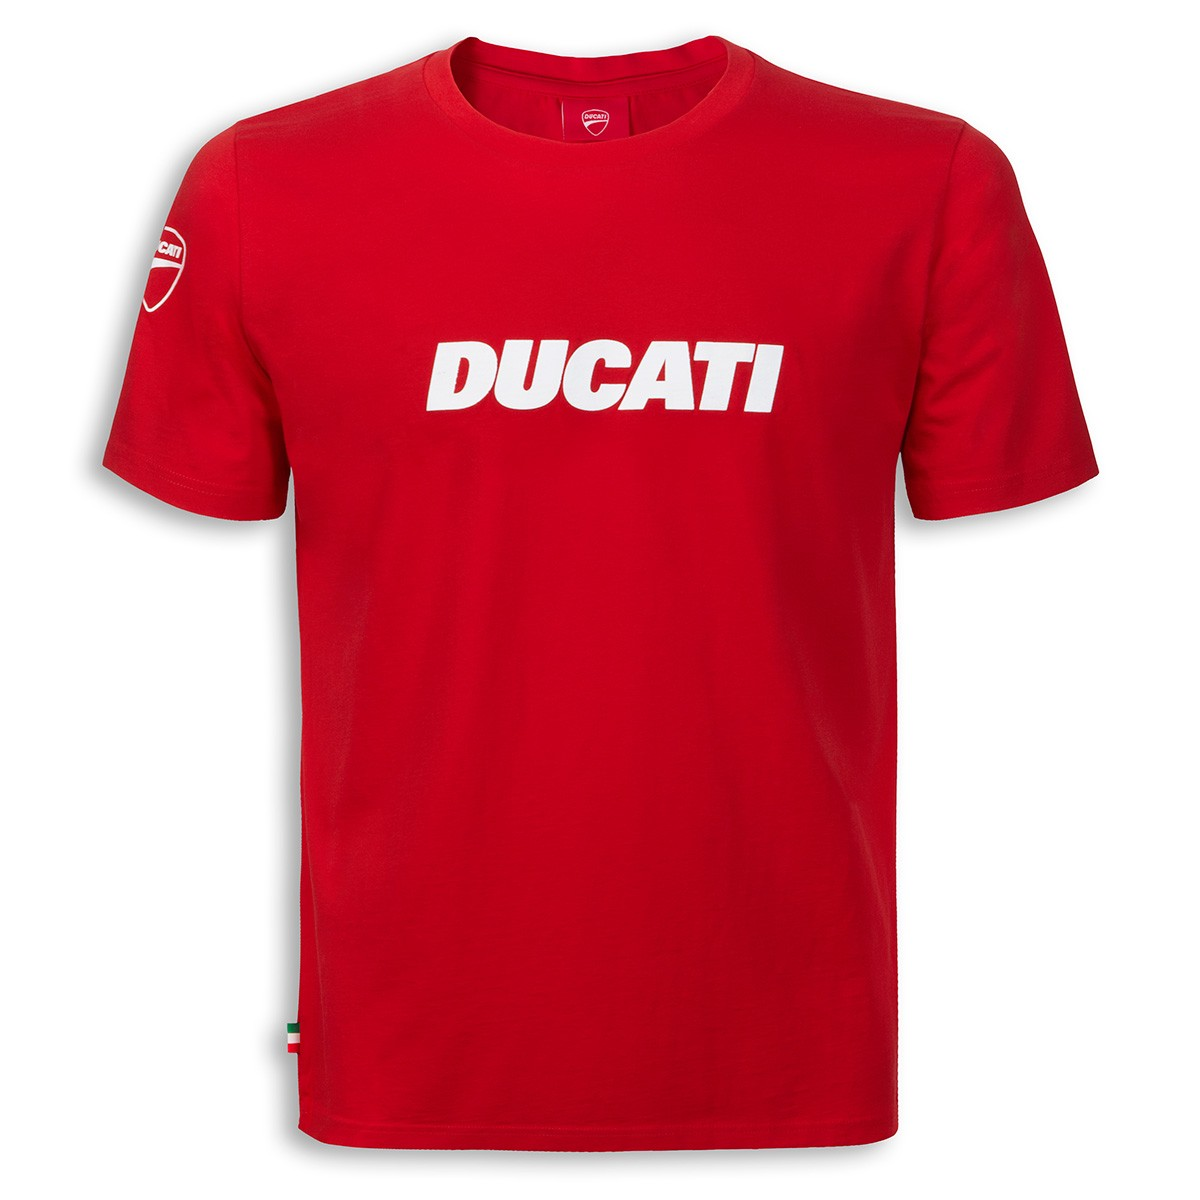 t shirt ducati ducatania 2 noir rouge blanc s team motos. Black Bedroom Furniture Sets. Home Design Ideas